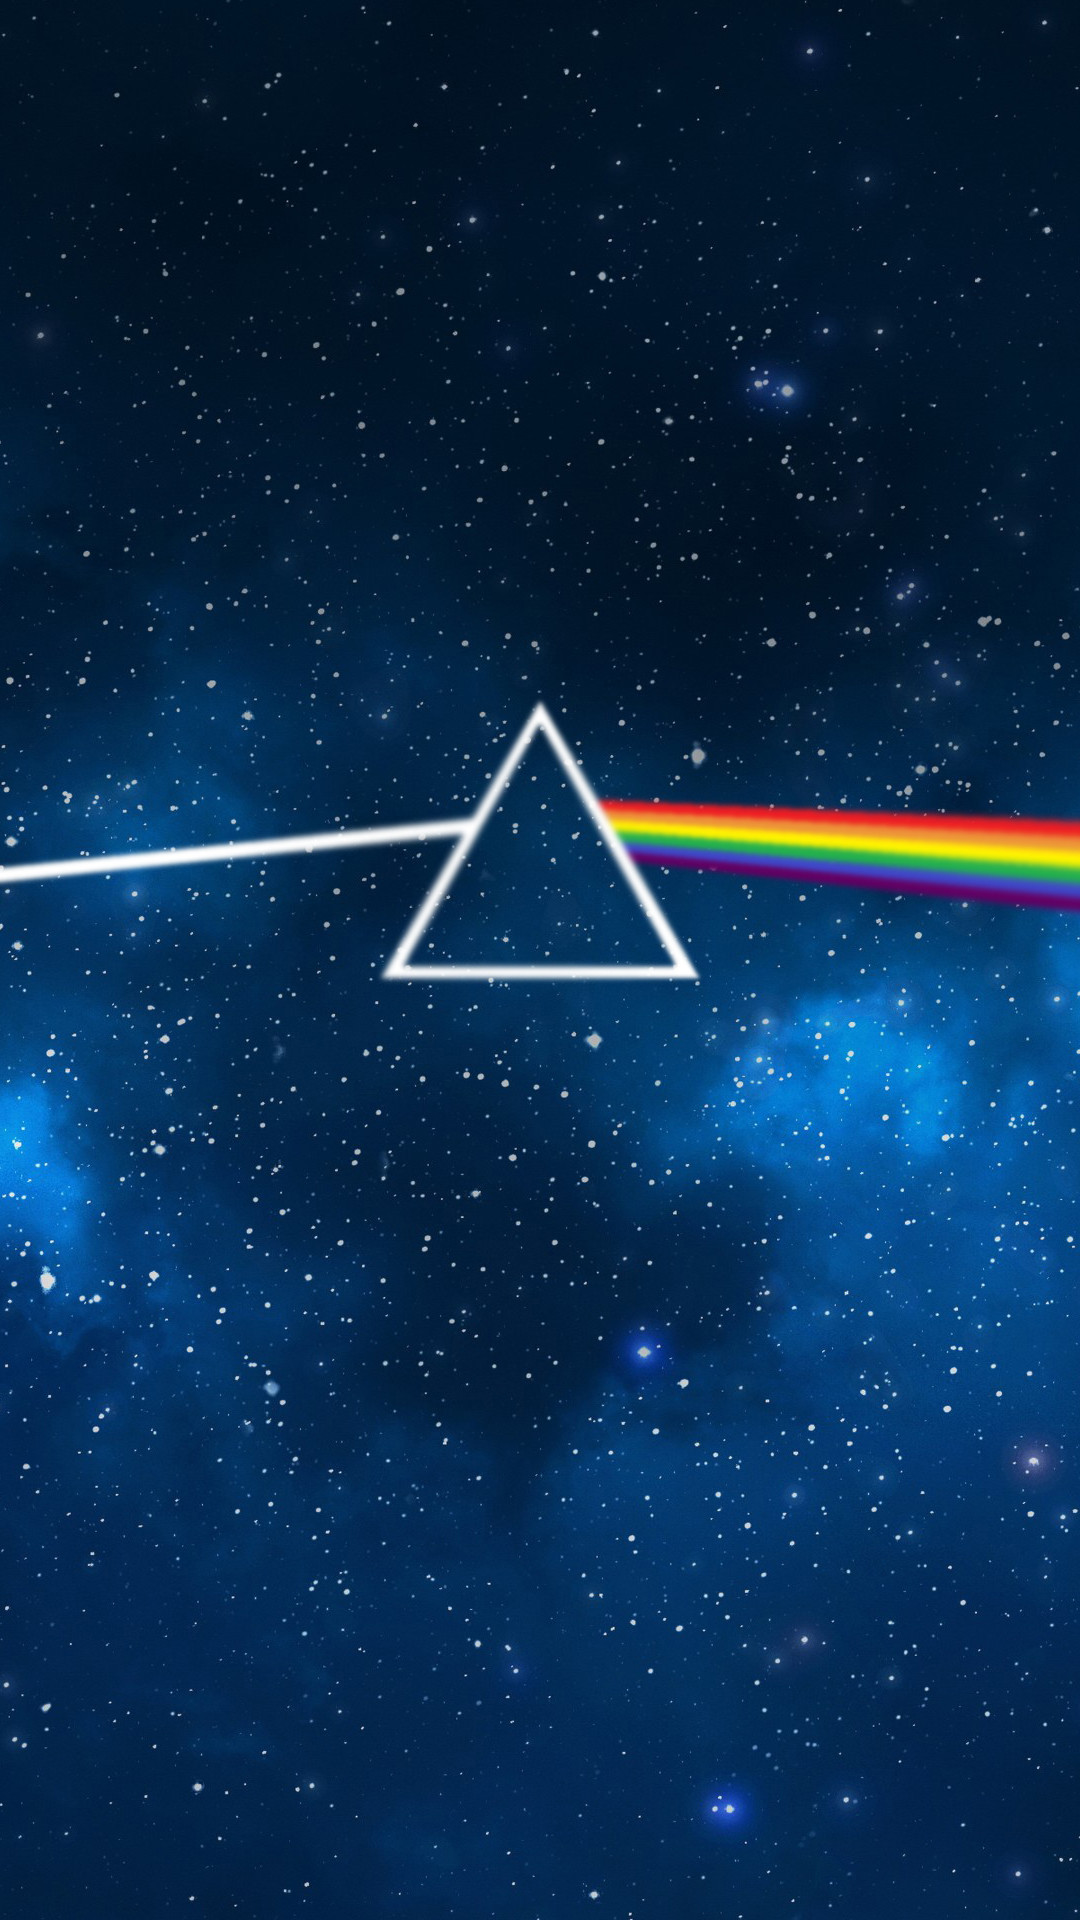 1080x1920 Dark Side of the Moon Wallpapers (Mobile)